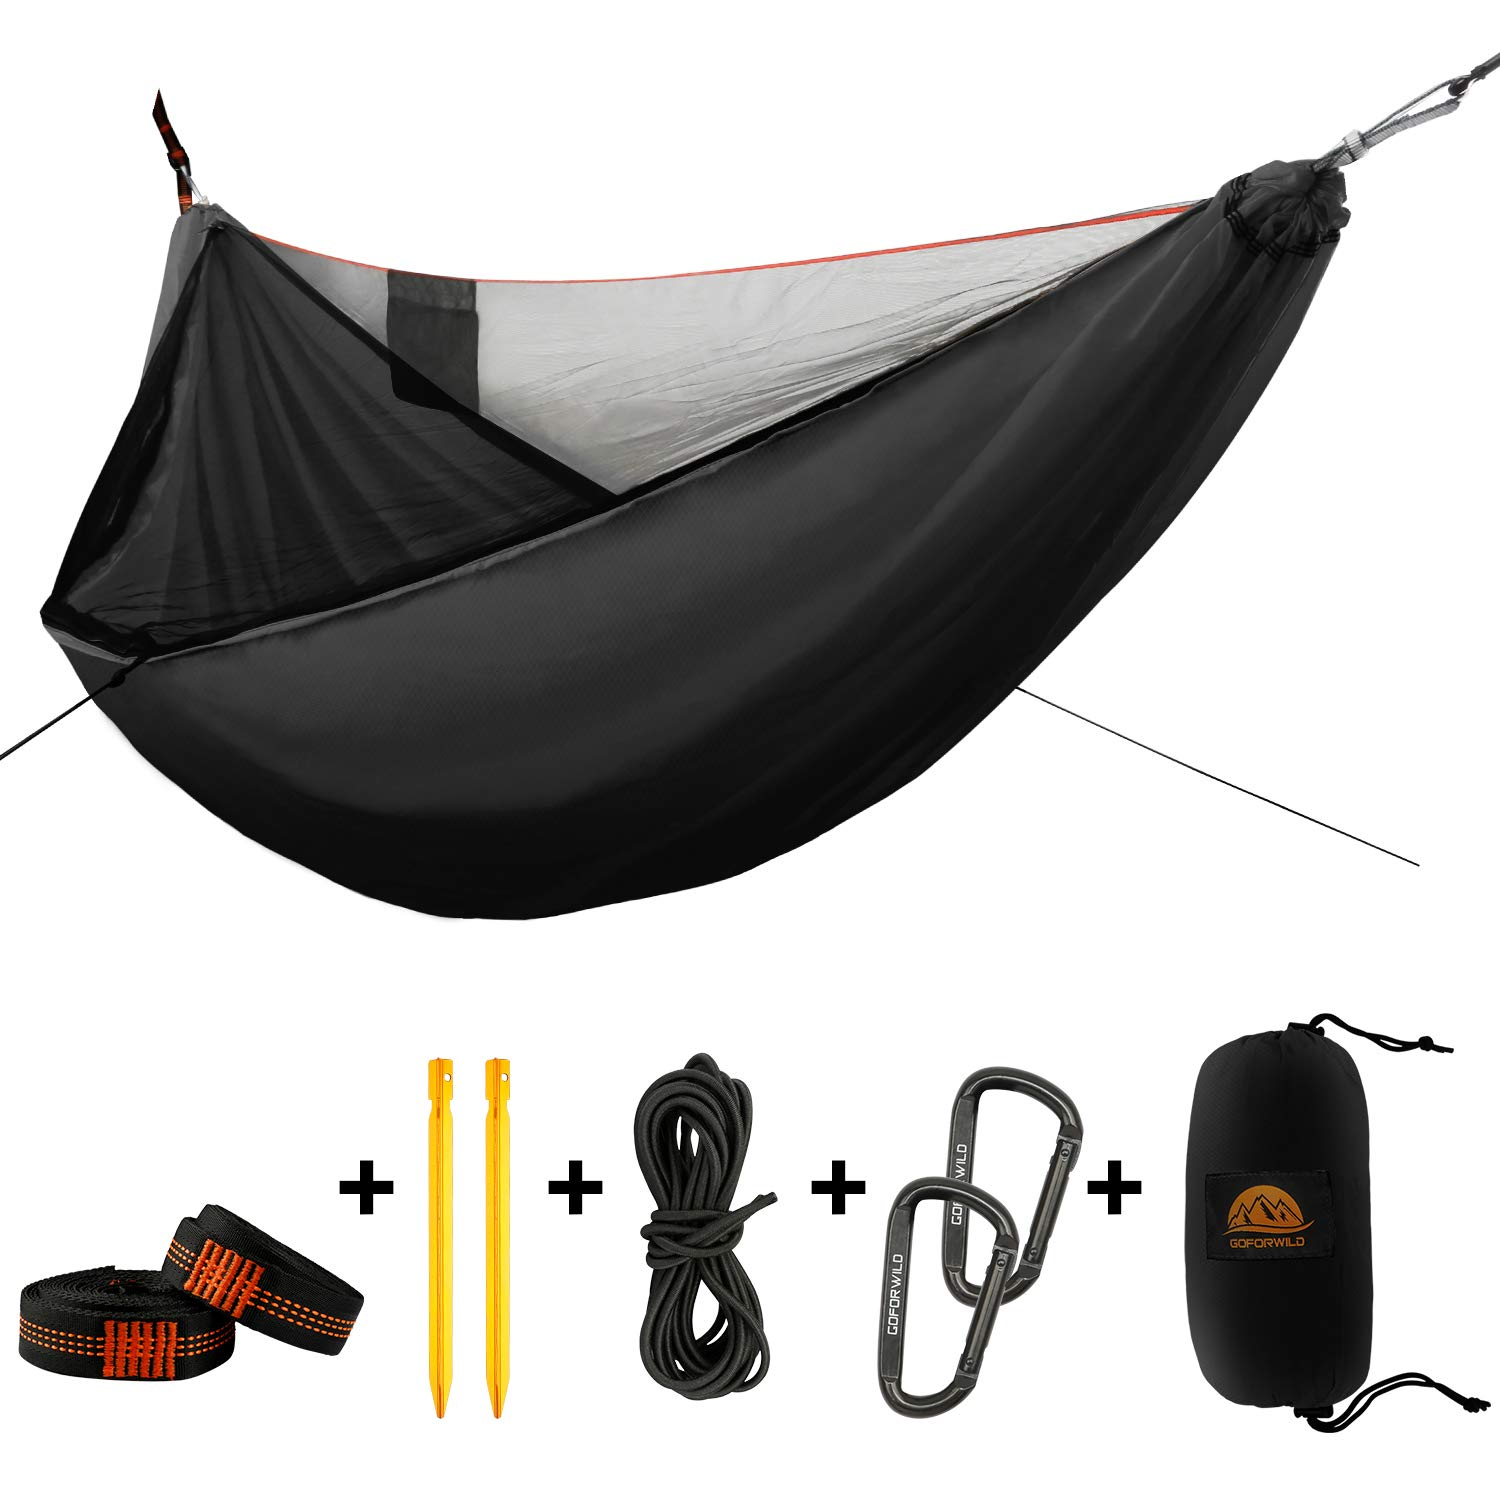 GOFORWILD Camping Hammock with Net, Single Nylon Hammocks in Diagonal Design, Lightweight Portable Backpacking Hammock with Heavy Duty Tree Straps Carabiners for Indoor, Outdoor